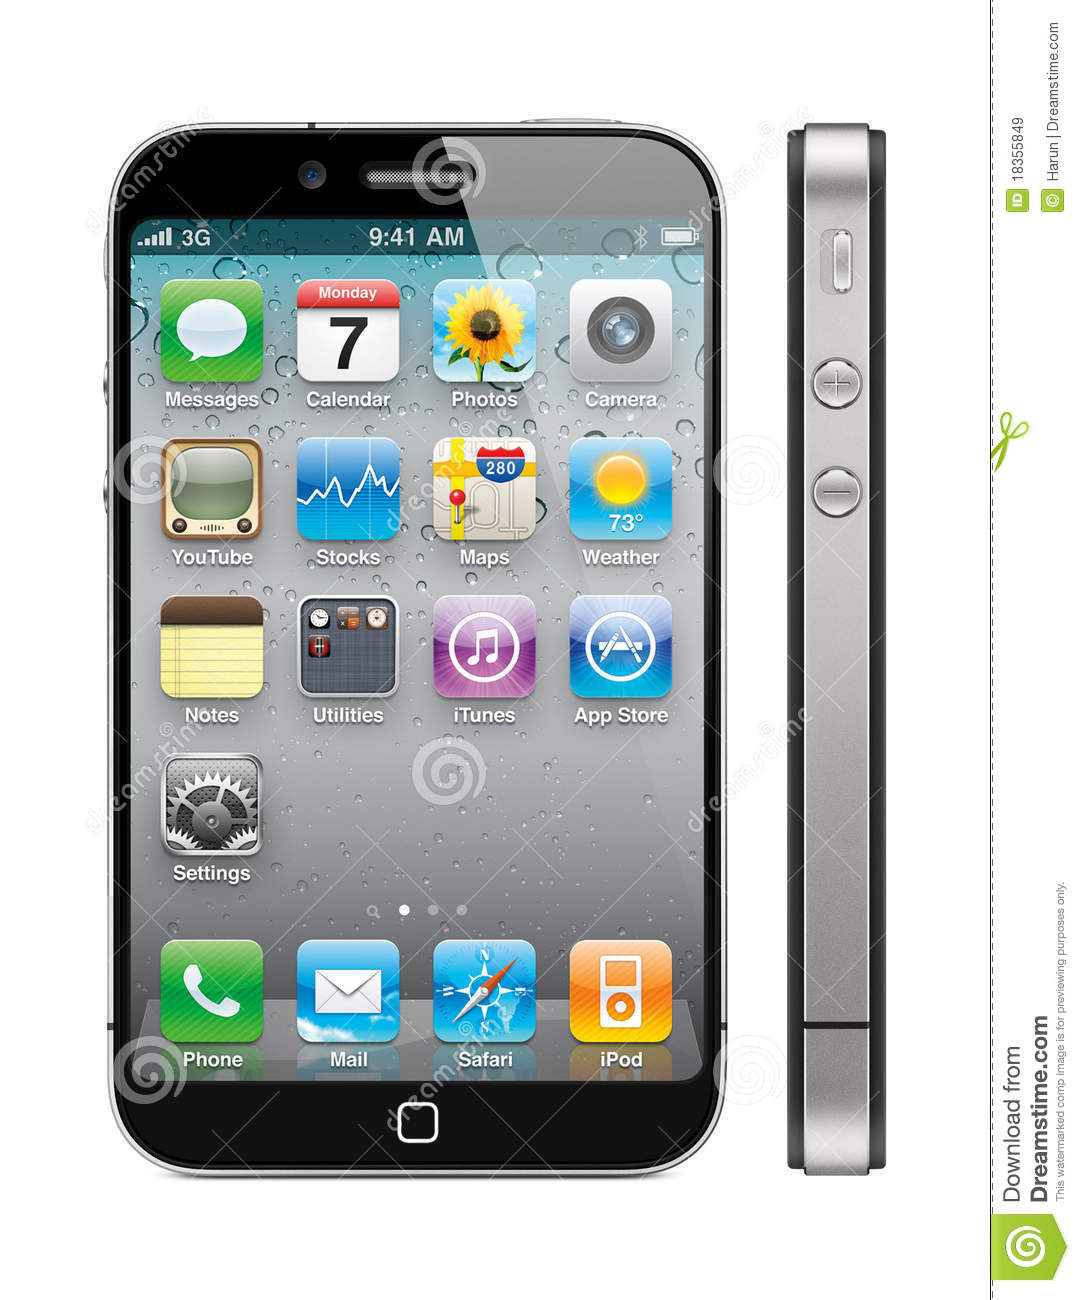 the latest apple iphone new apple iphone 5 concept editorial stock image image 21830